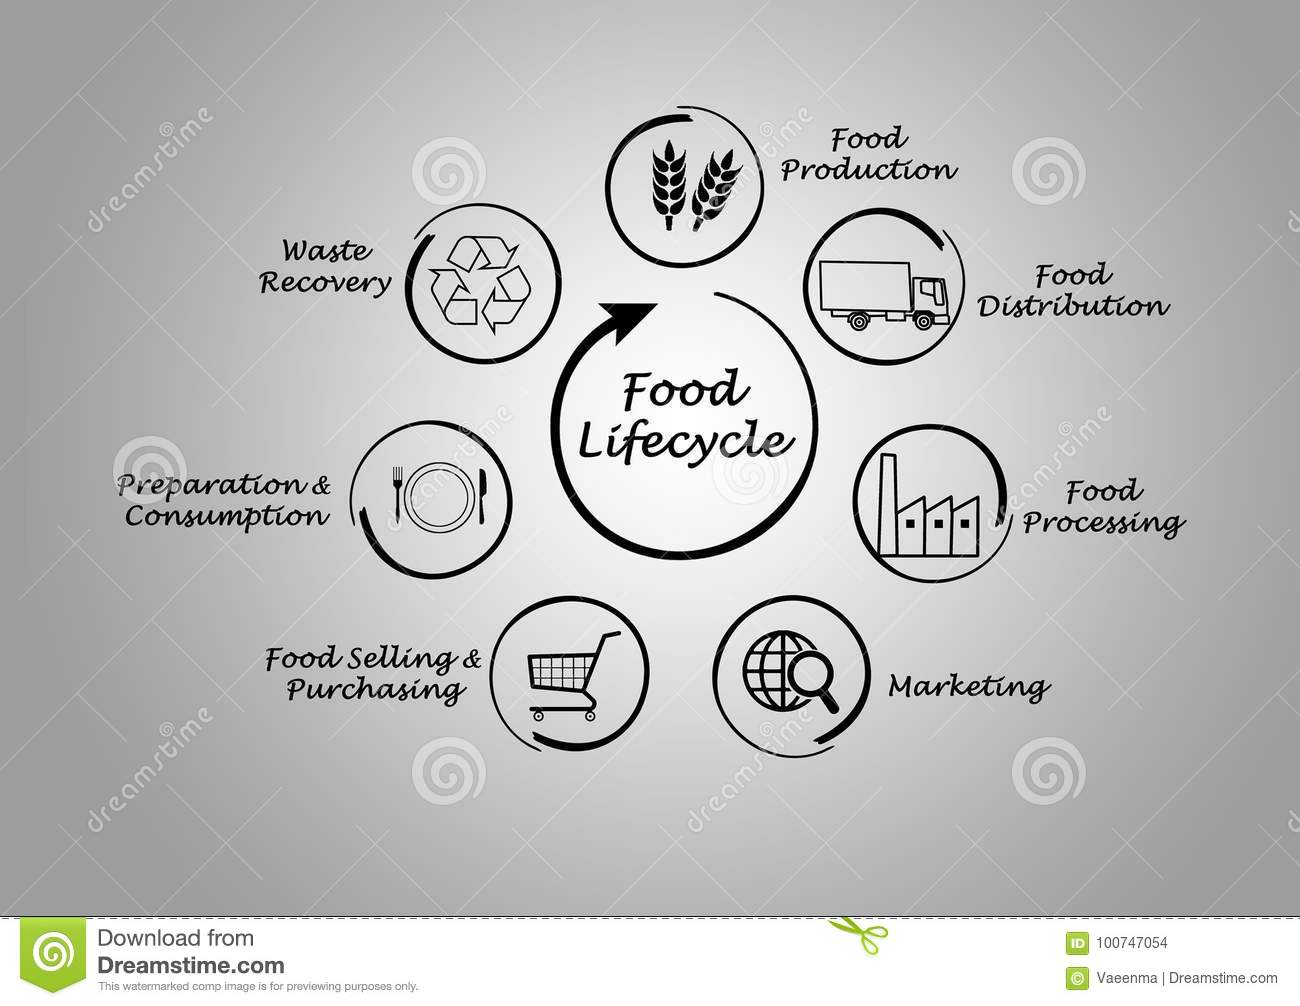 Food Lifecycle Stock Illustration Of Selling 100747054 Life Cycle Also Bald Eagle Diagram In Addition From Production To Waste Recovery